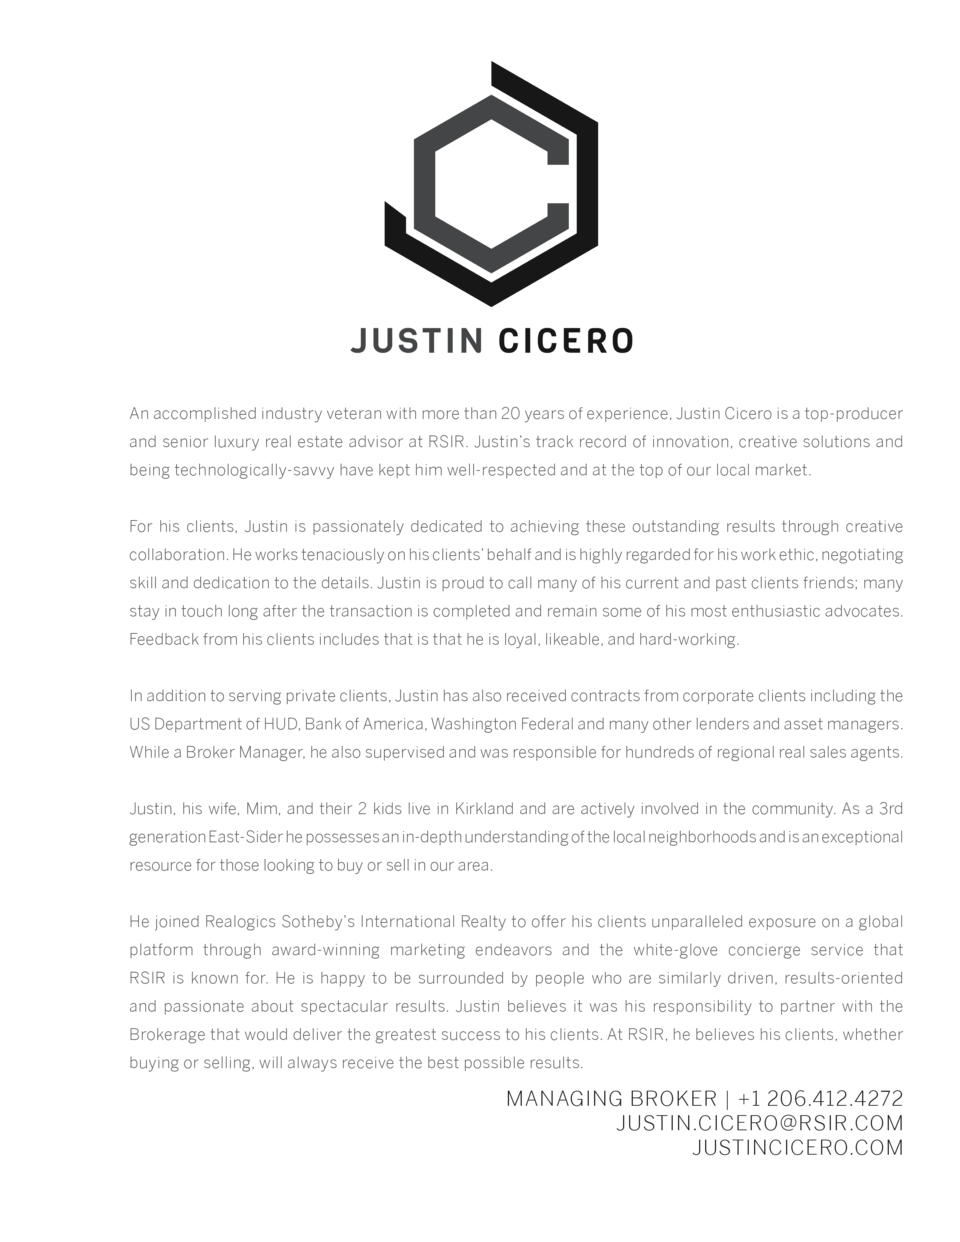 An accomplished industry veteran with more than 20 years of experience, Justin Cicero is a top-producer and senior luxury ...